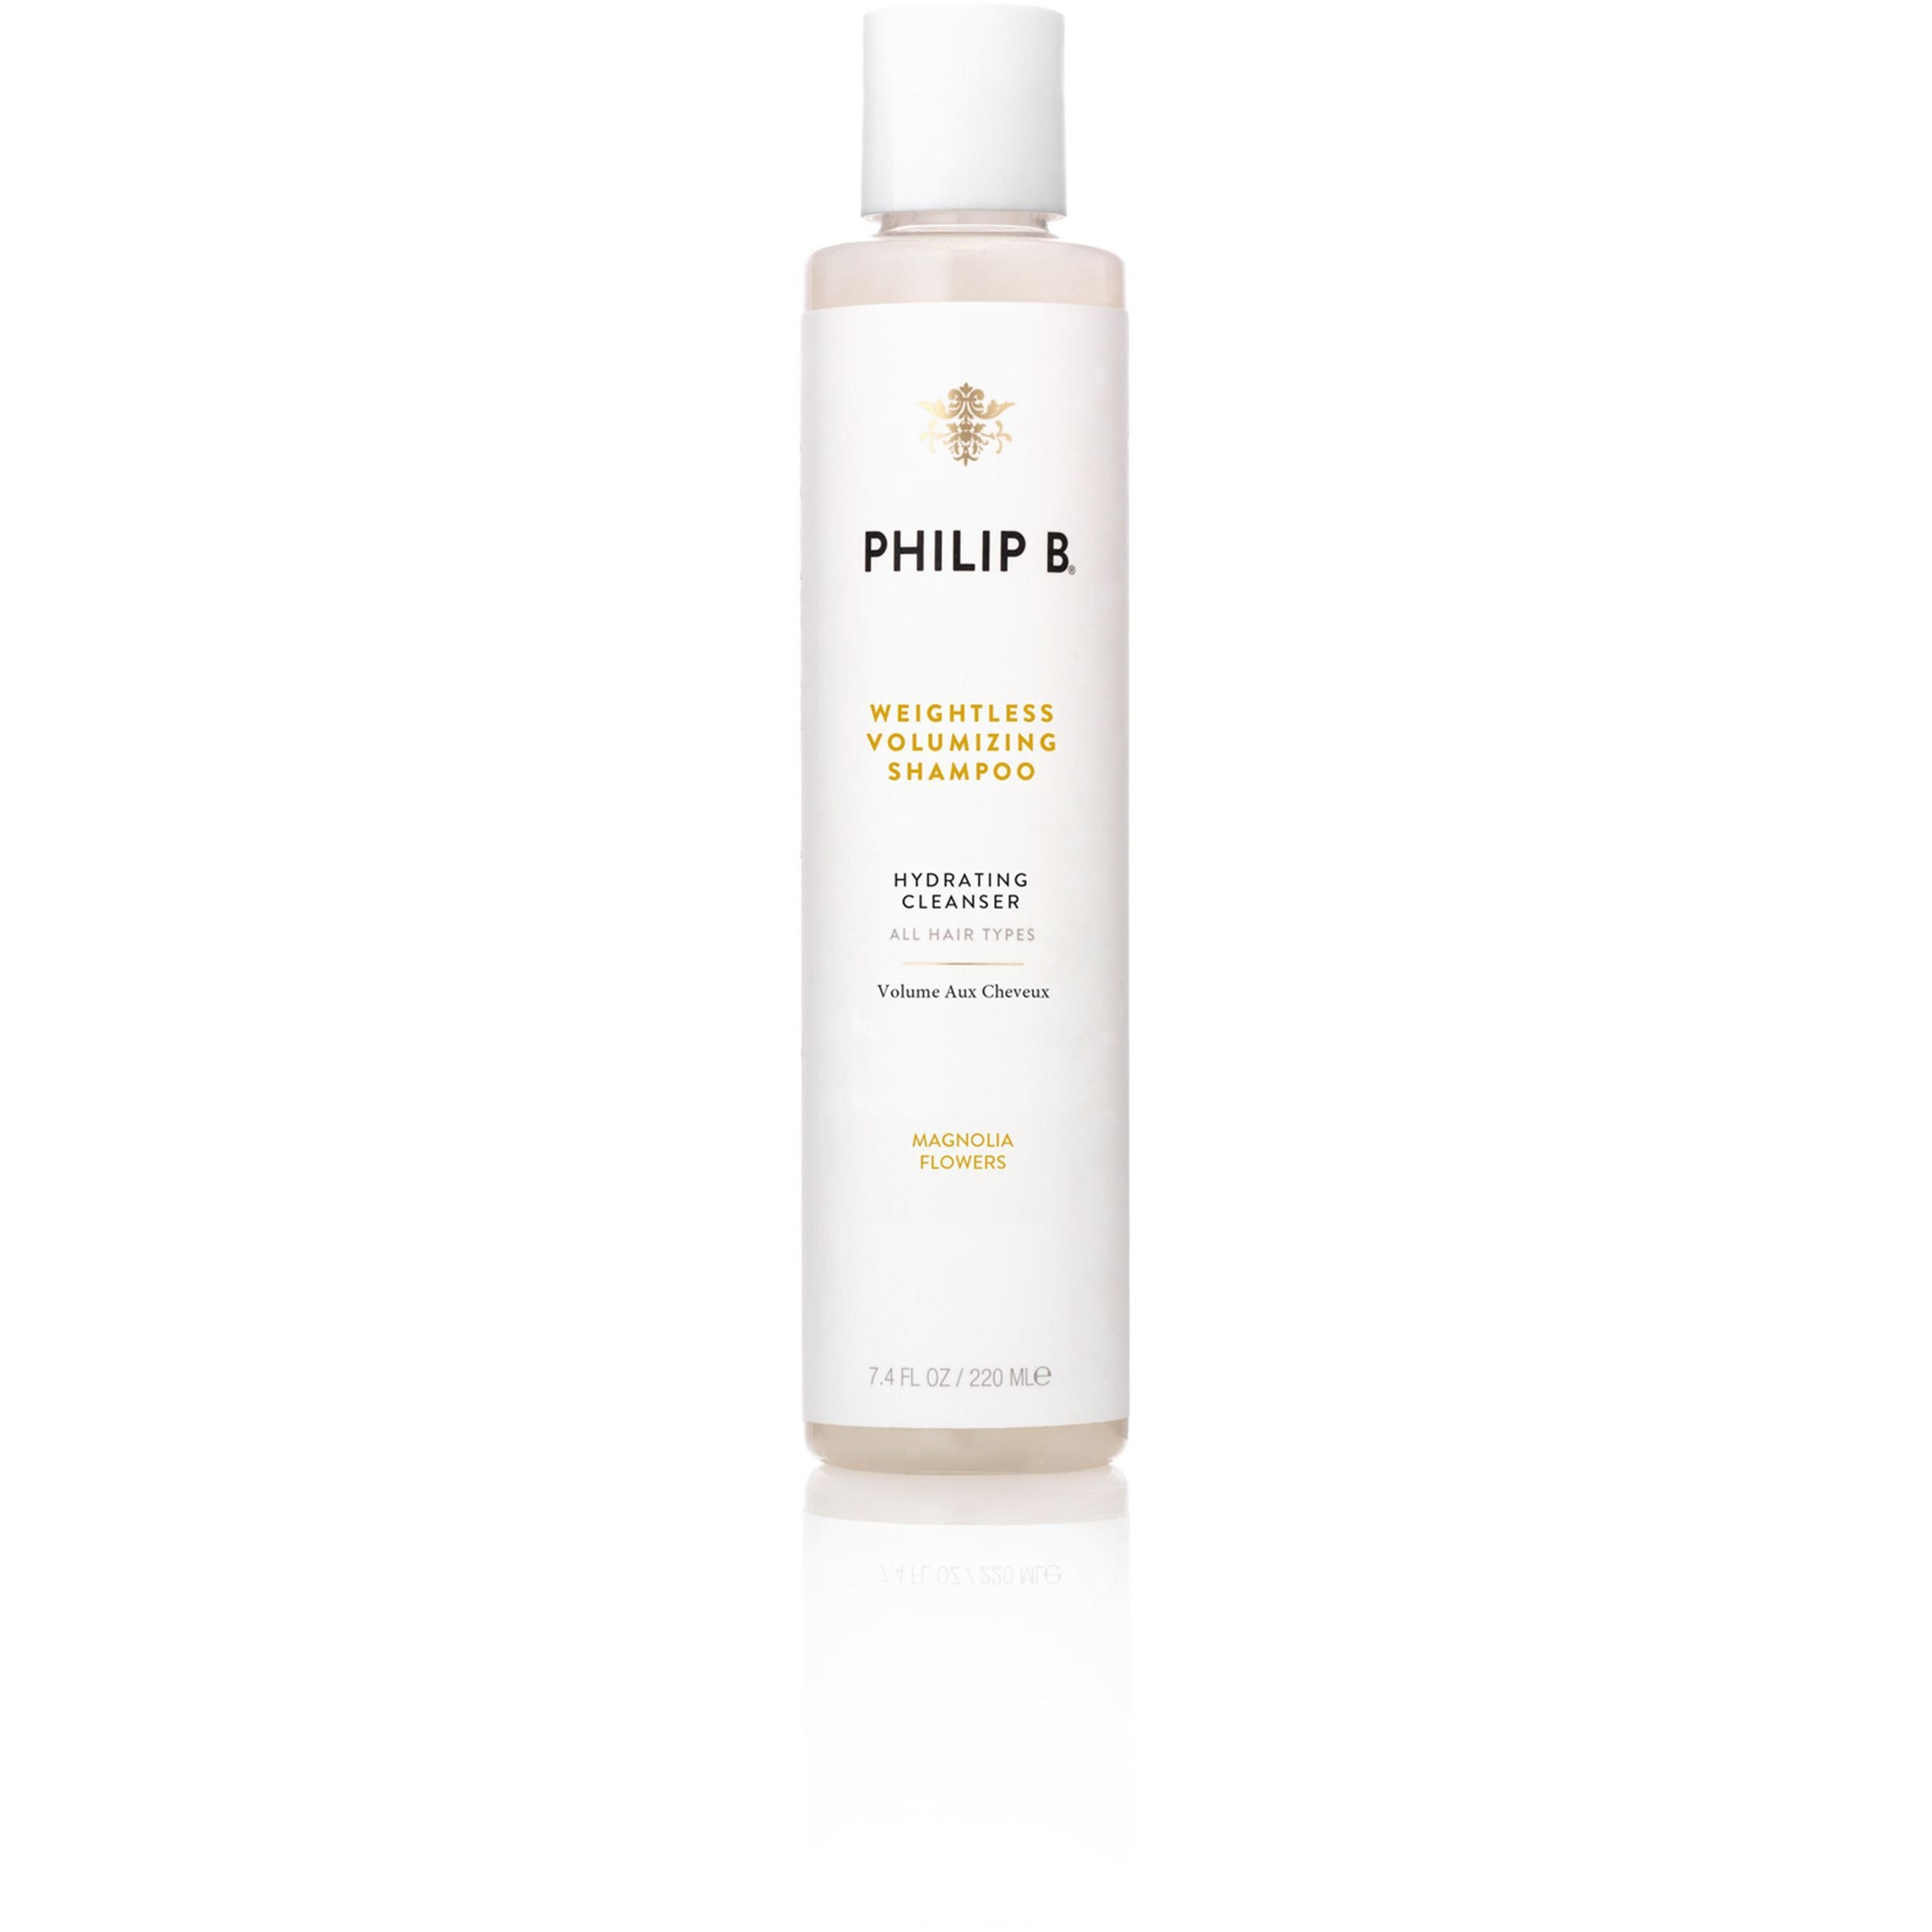 Philip B Weightless Volumizing Shampoo 220 ml